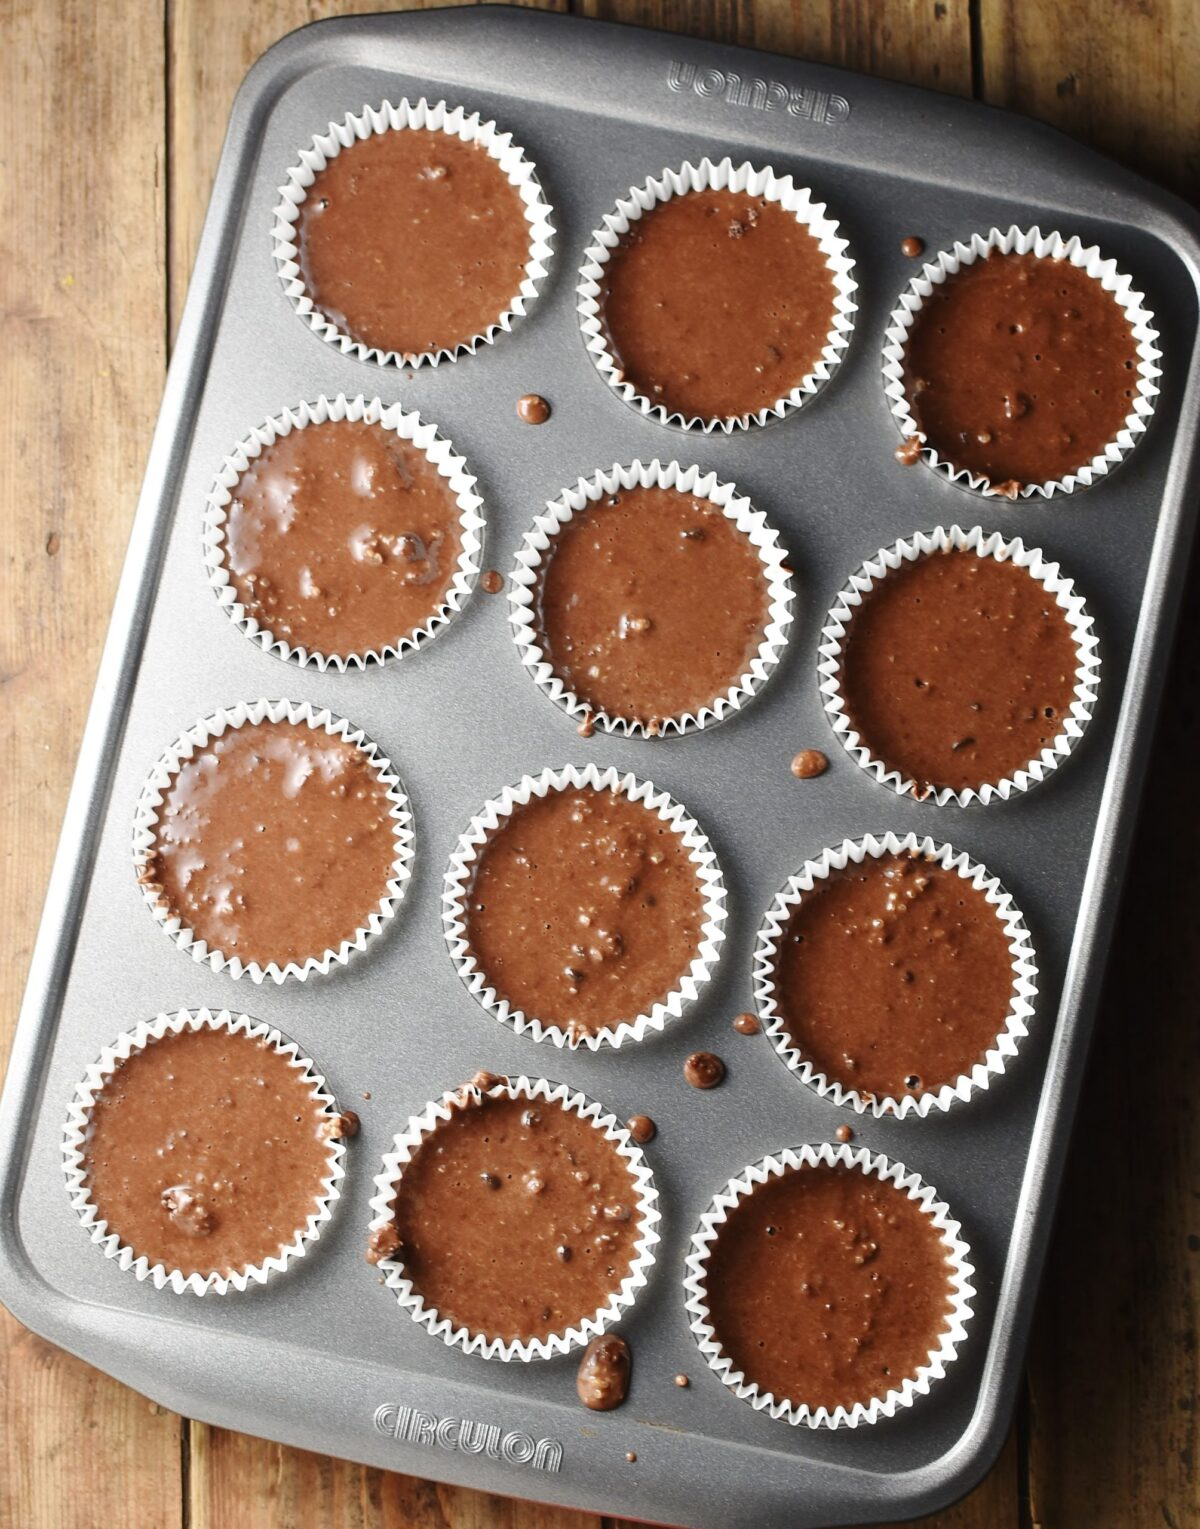 12 unbaked chocolate muffins in white paper cases in muffin pan.